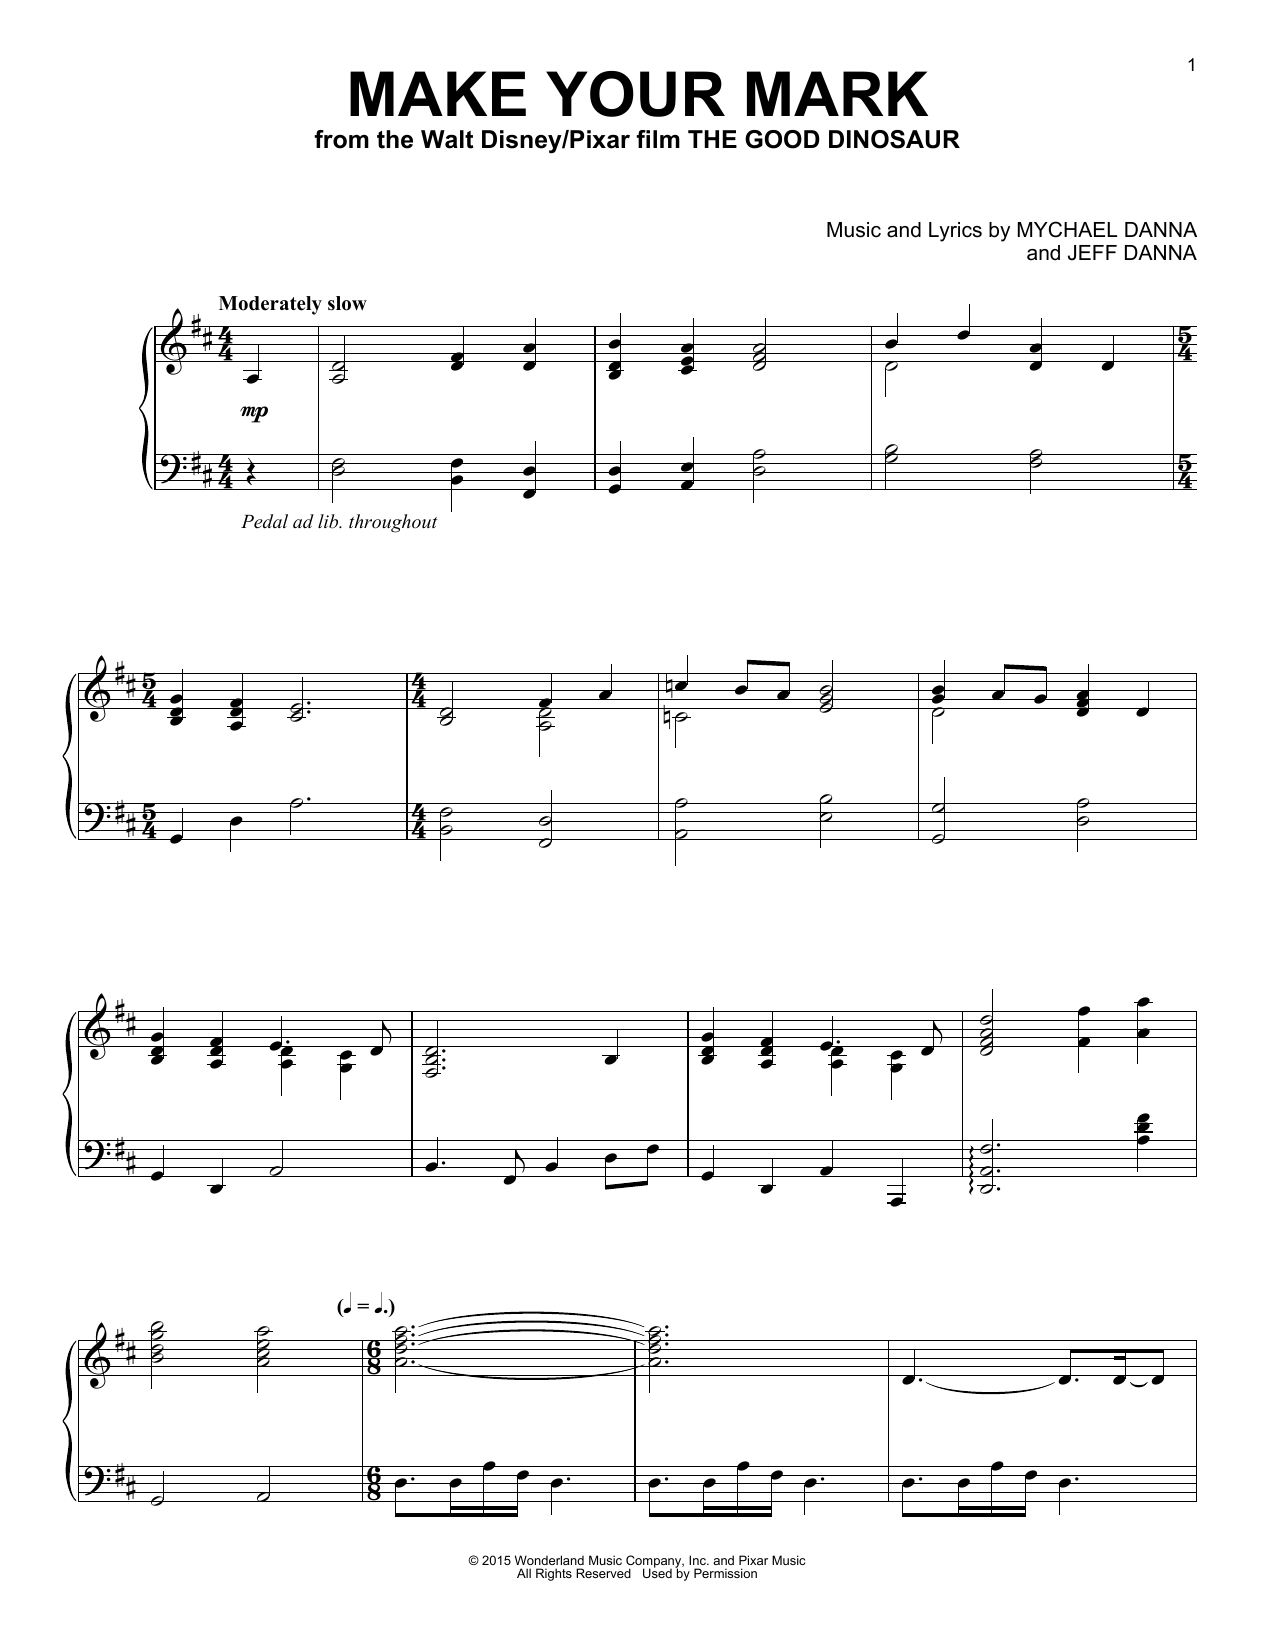 Mychael & Jeff Danna Make Your Mark sheet music notes and chords. Download Printable PDF.